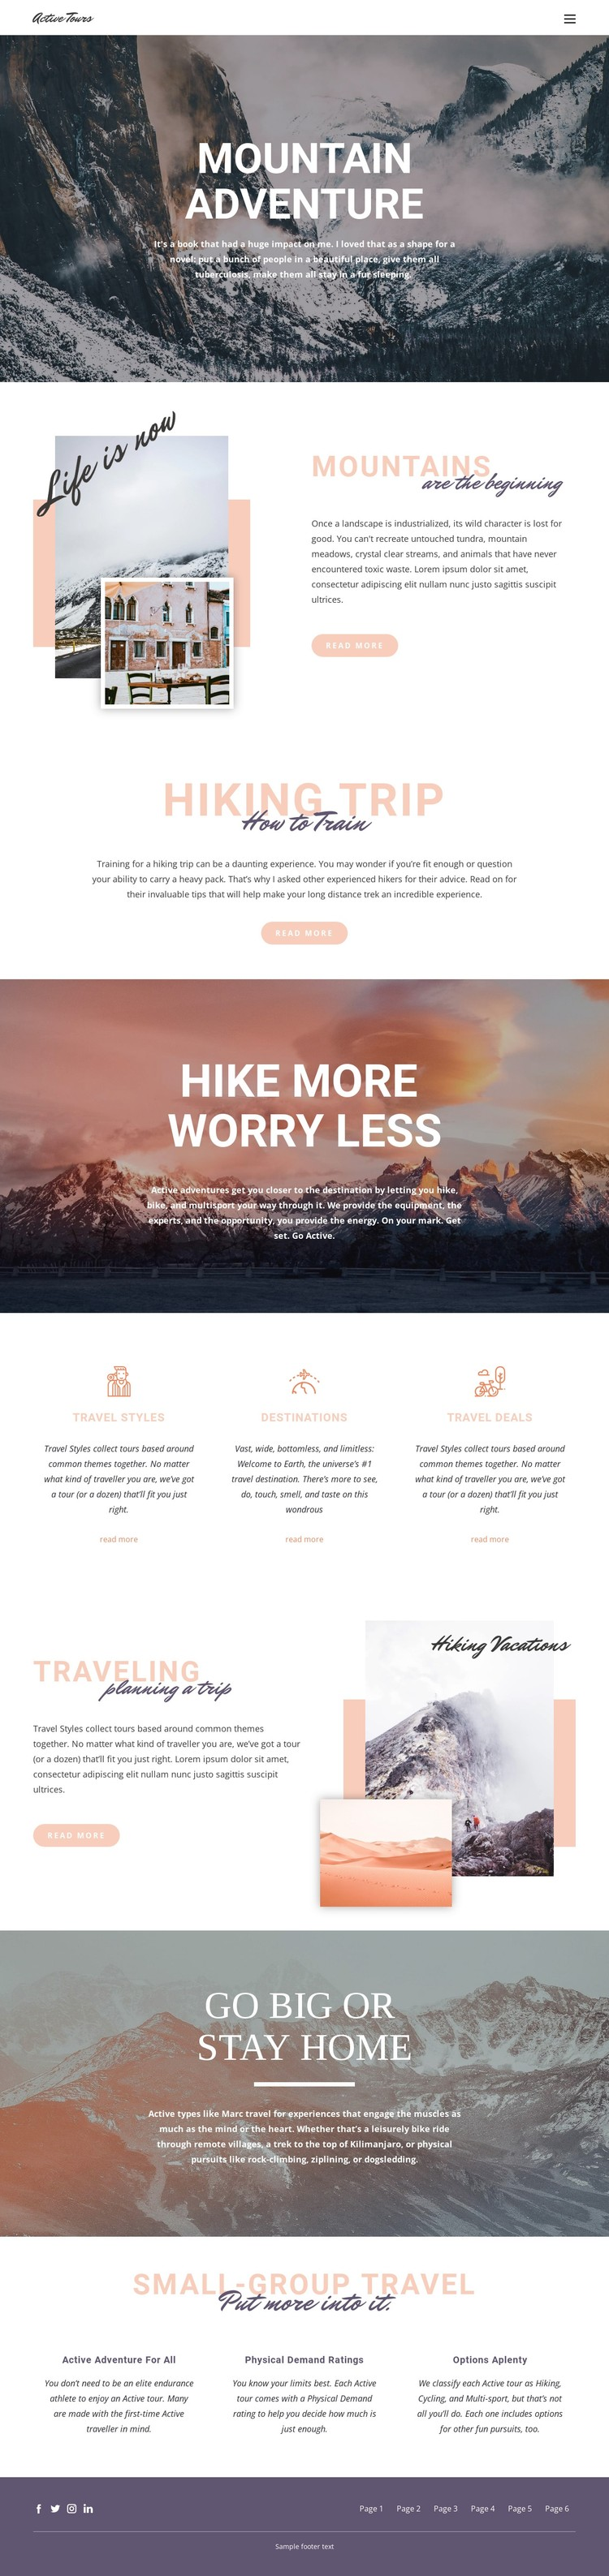 Guided backpacking trips Static Site Generator